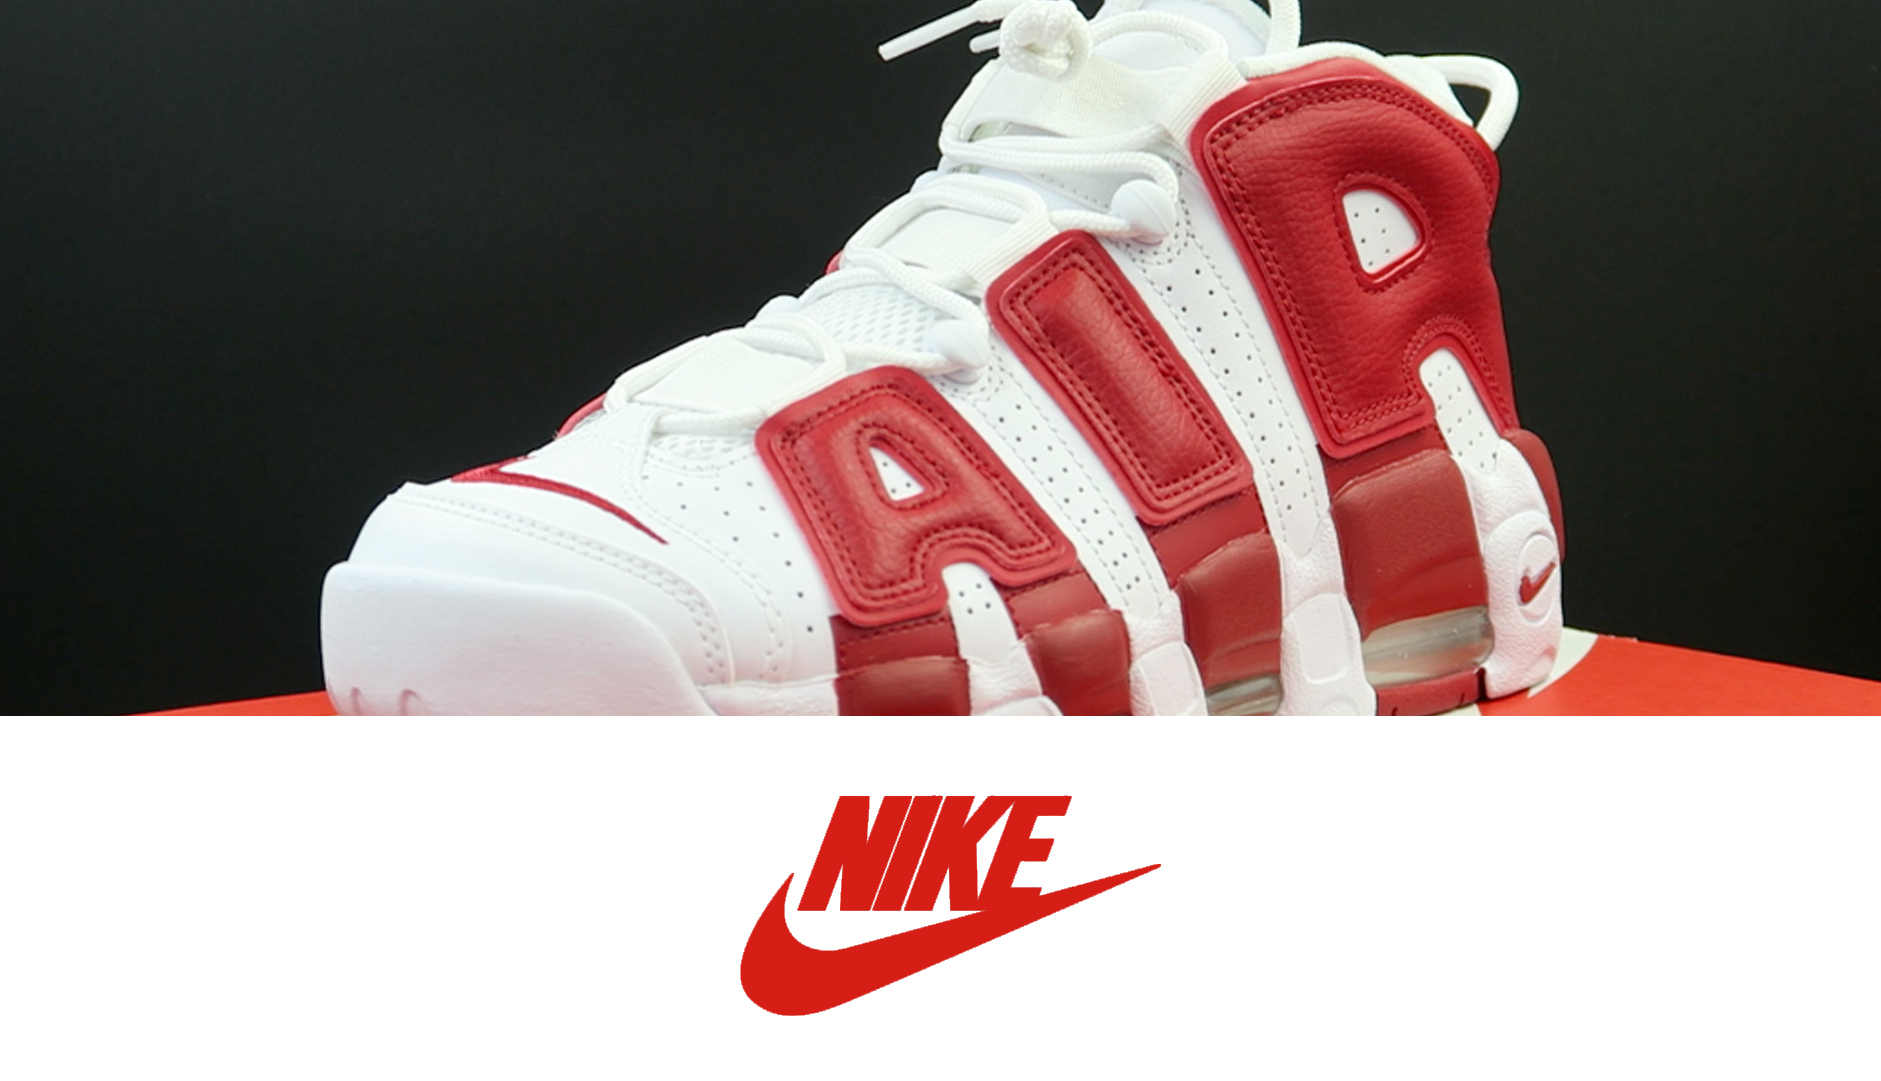 Nike Air More Uptempo White: Gym Red | Detailed Look and Review